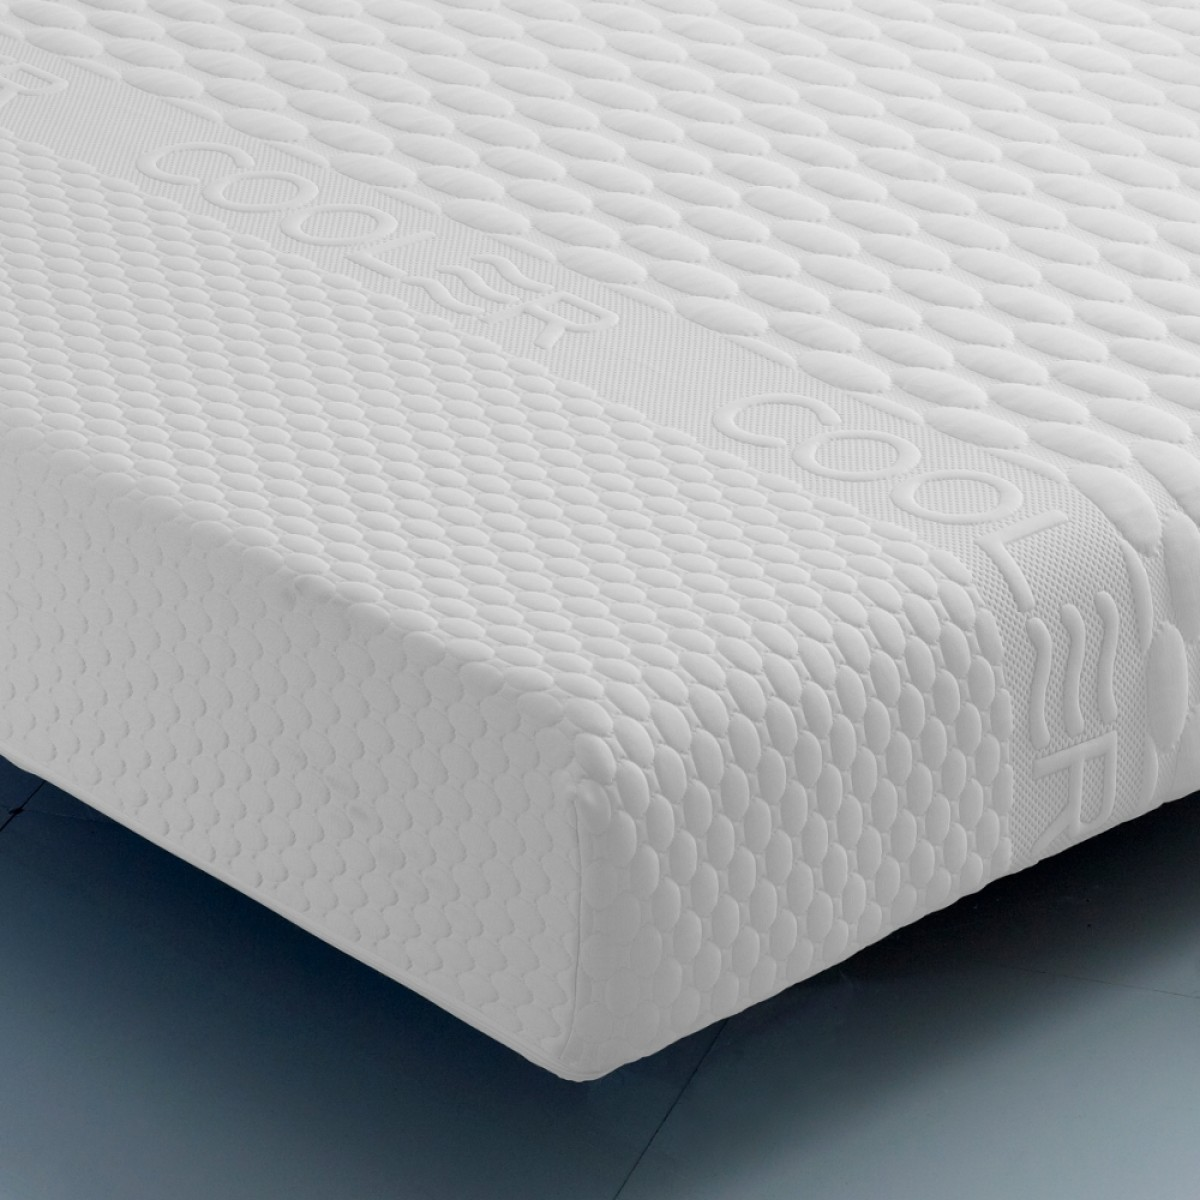 Latex Foam Mattress Impressions Laytech Memory Latex And Reflex Foam Orthopaedic